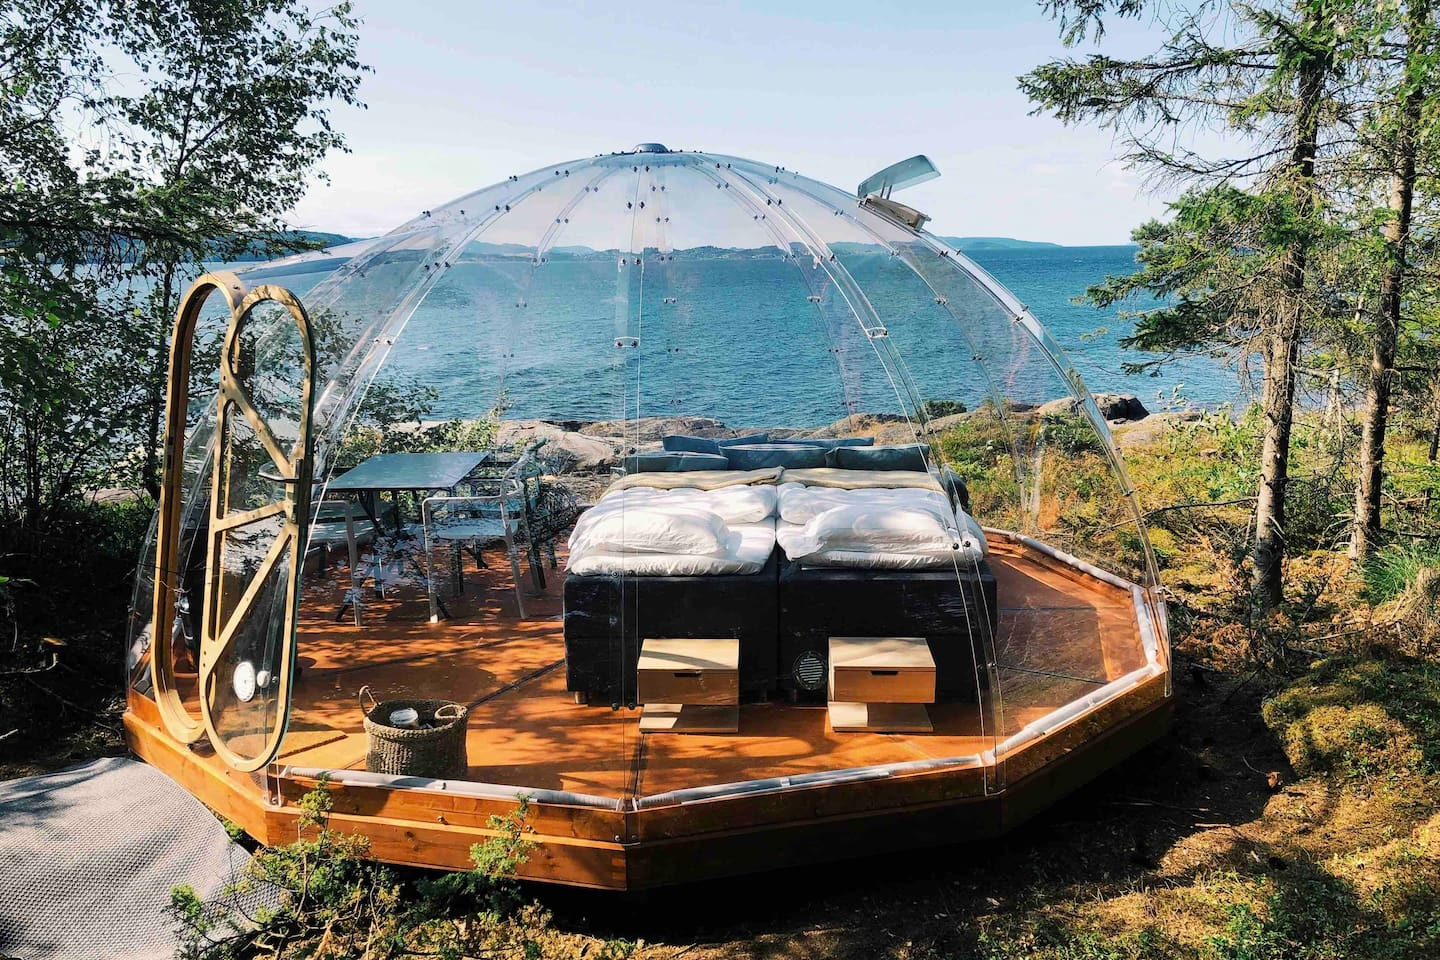 Trones Eye is a family-run accommodation venue for those who want an overnight glamping experience out of the ordinary. The igloo is standing by the fjord on the outskirts of Trones golf course and Trones Farm in Verdal, Trøndelag.